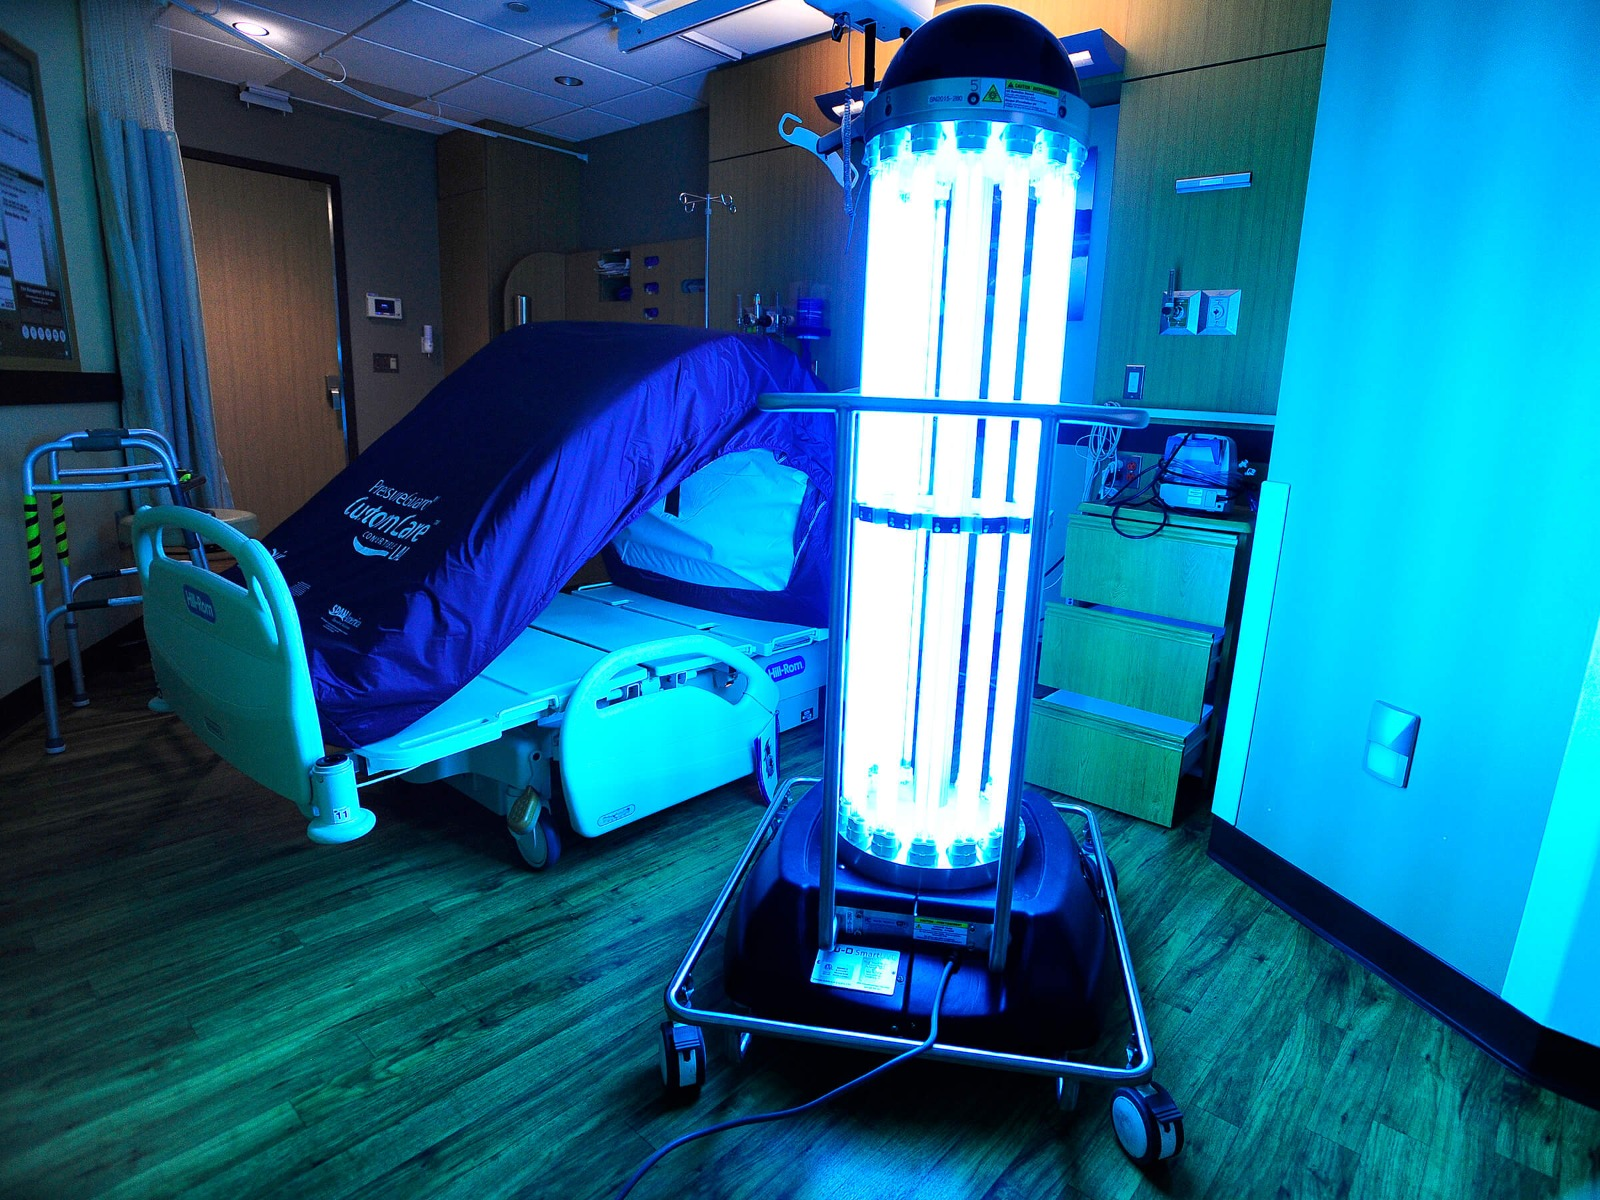 UV robot for hospital use